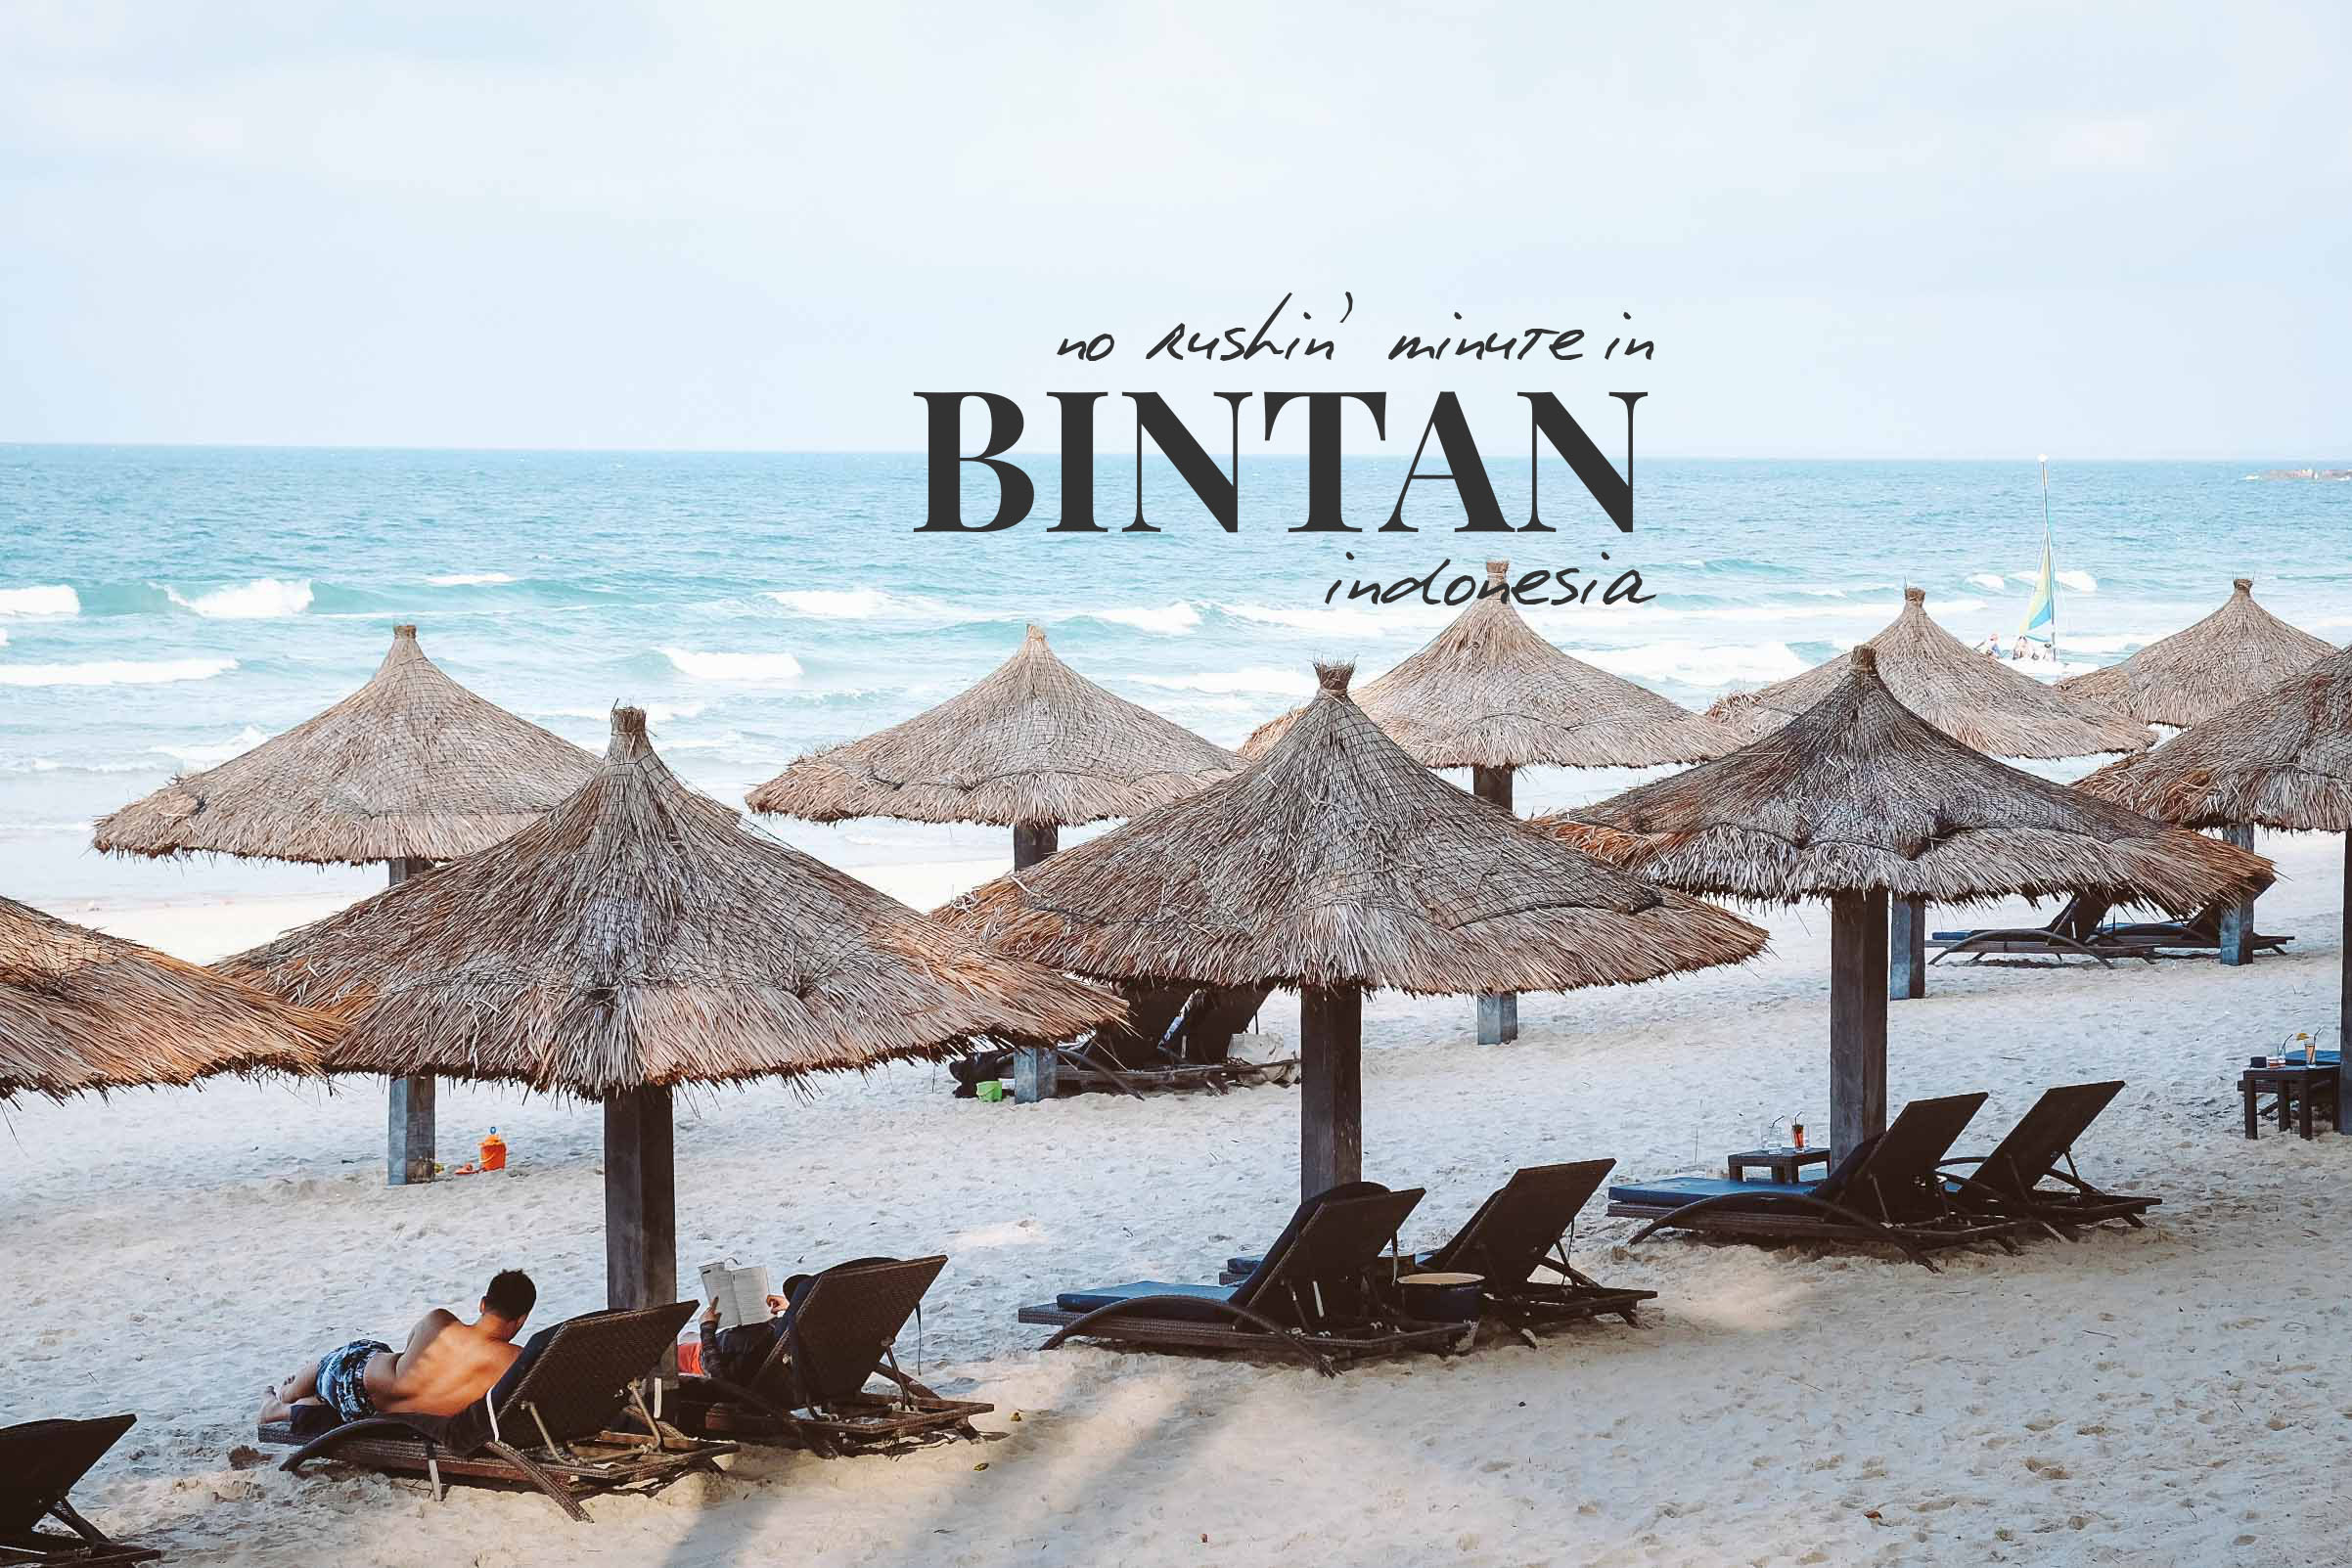 No rushin' minute in Bintan, Indonesia